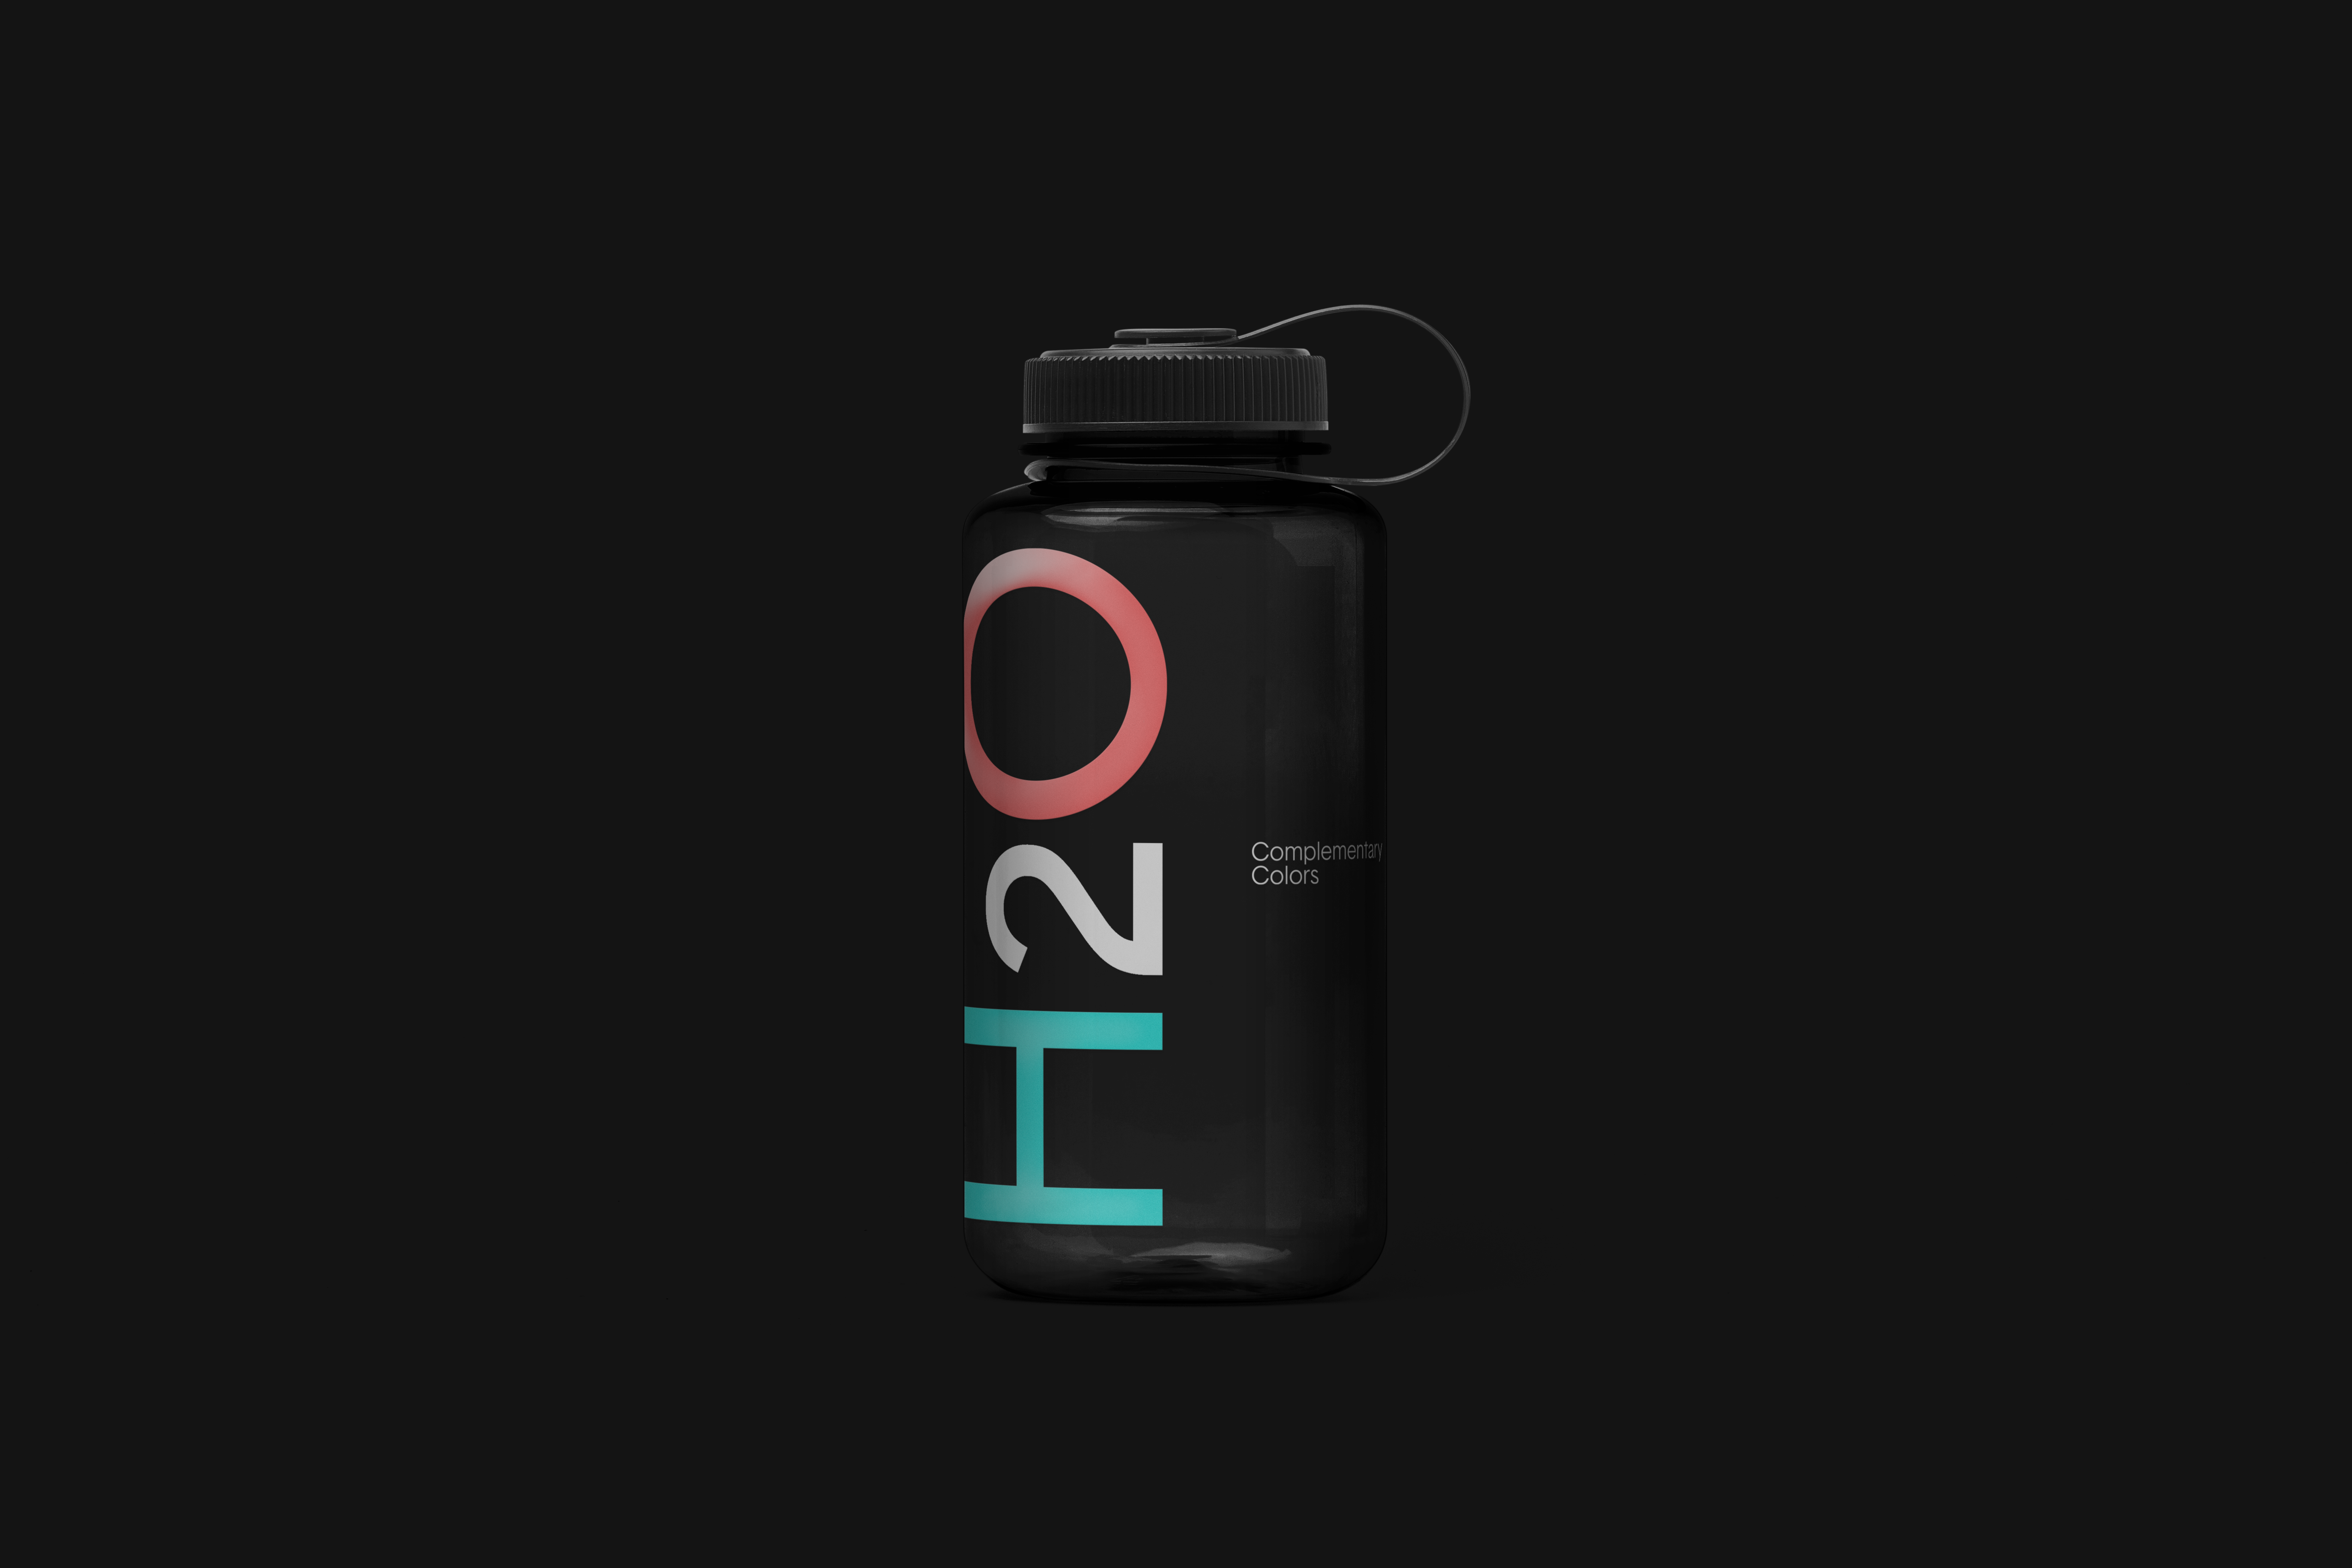 CCL_CaseStudy_WaterBottle_01